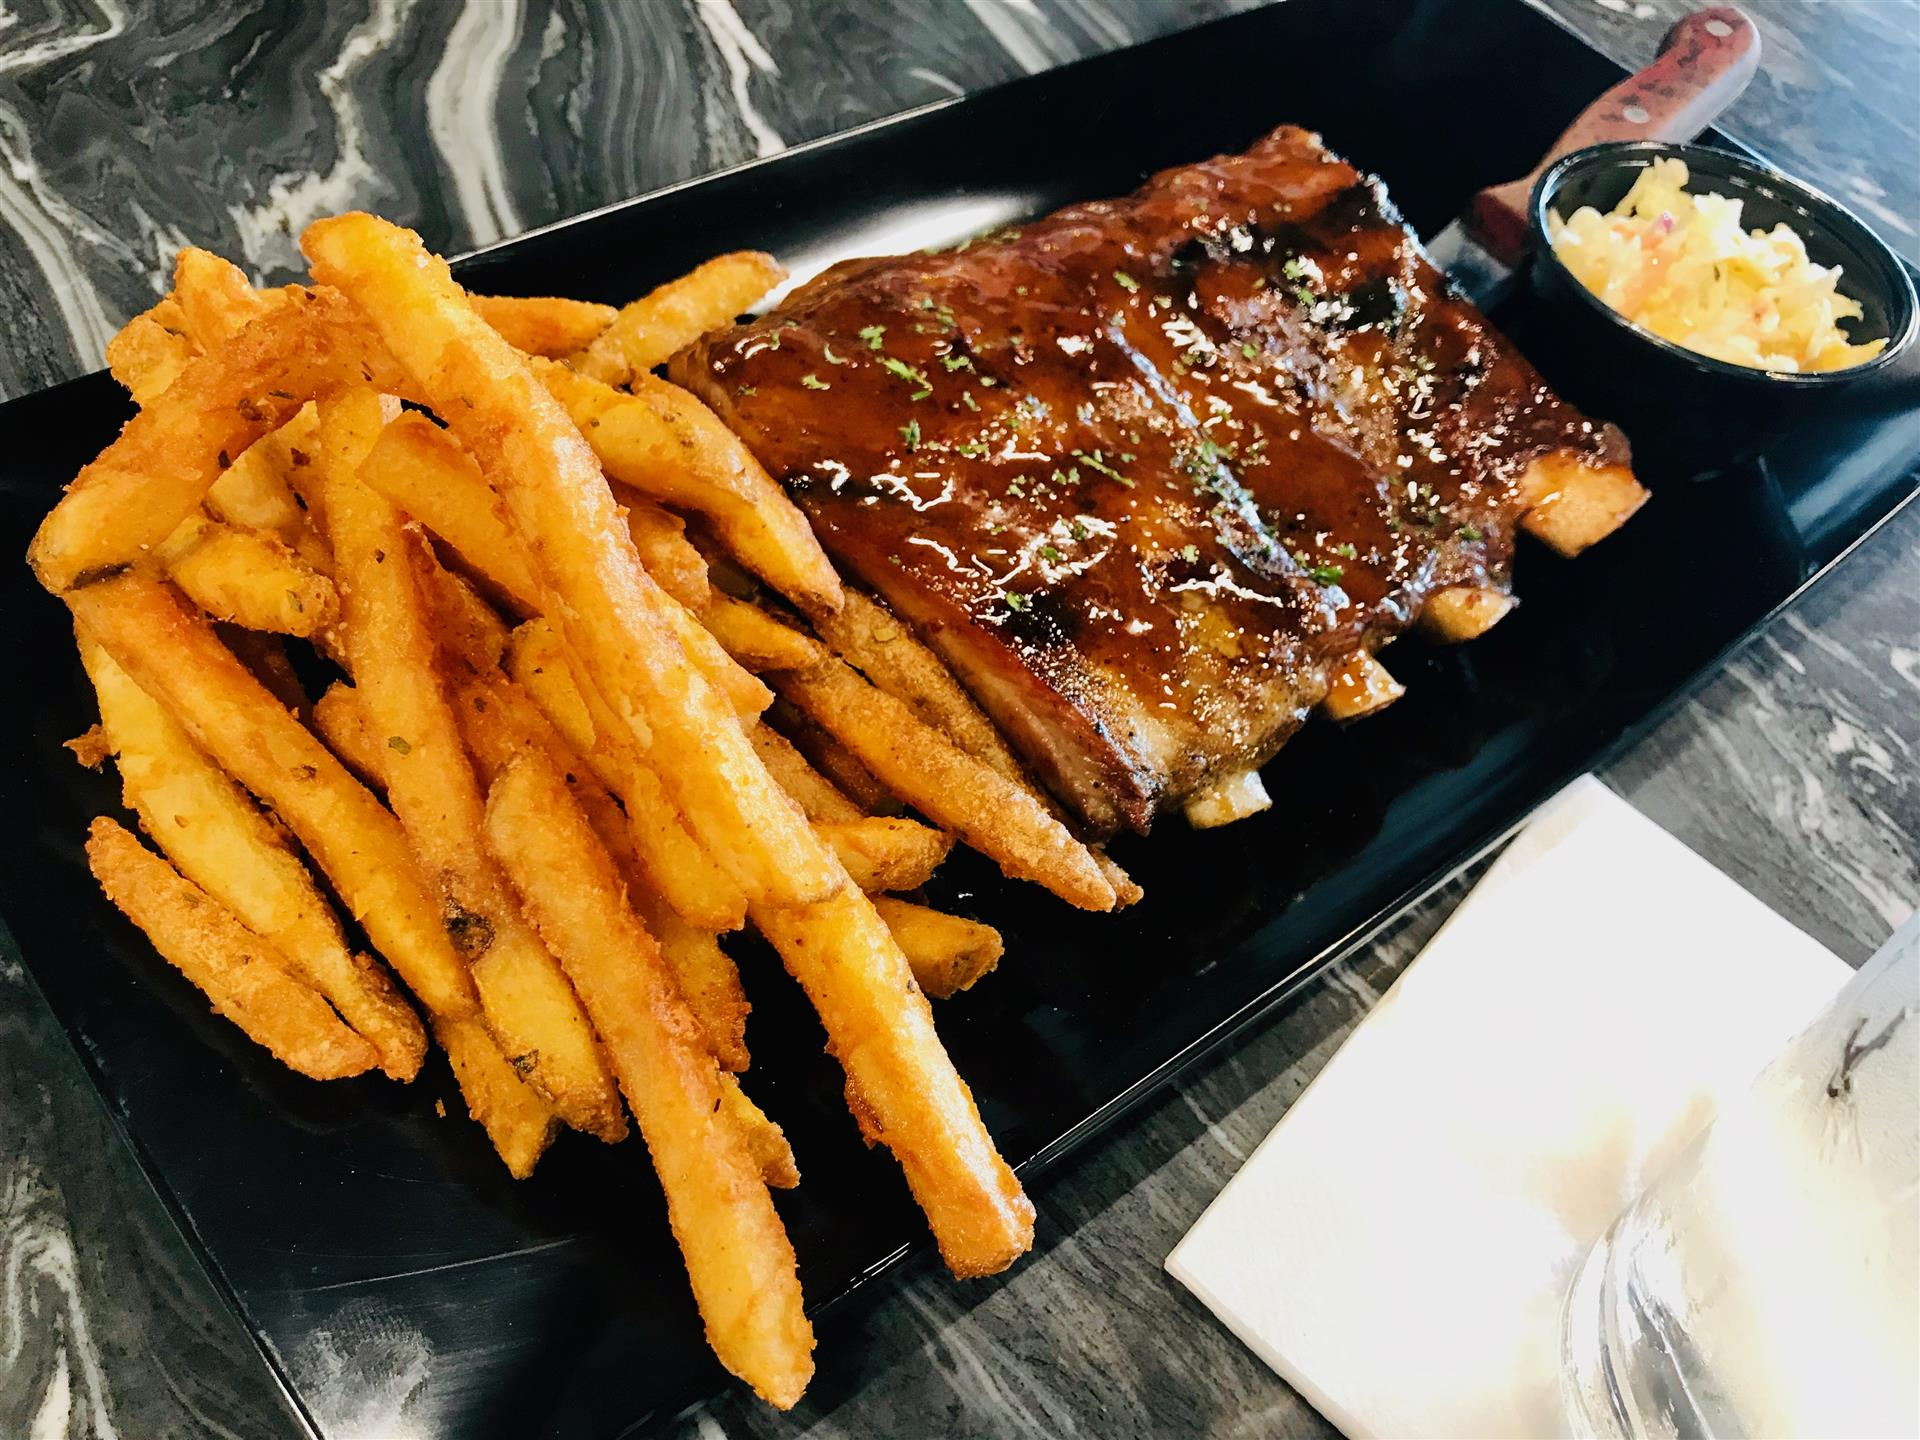 Mike's Honey Chipotle Ribs with a side of french fries